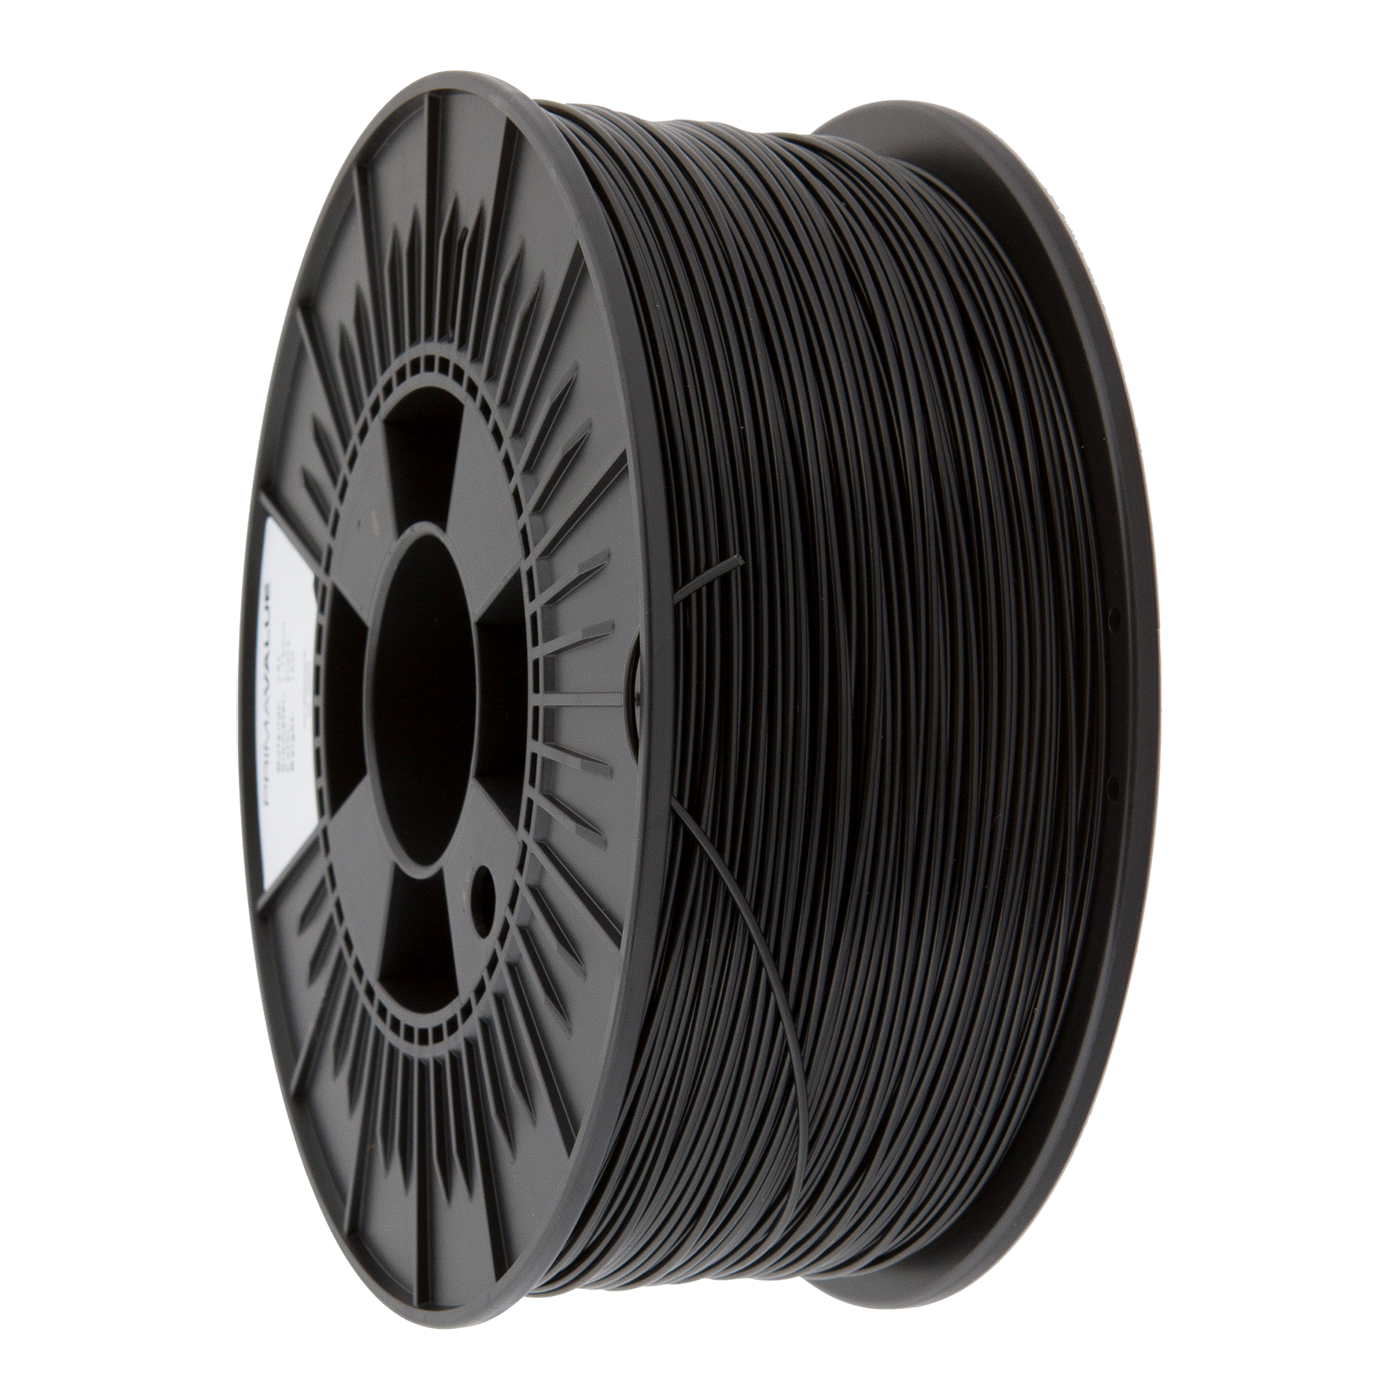 primavalue pla filament 1 kg spool black filaments. Black Bedroom Furniture Sets. Home Design Ideas